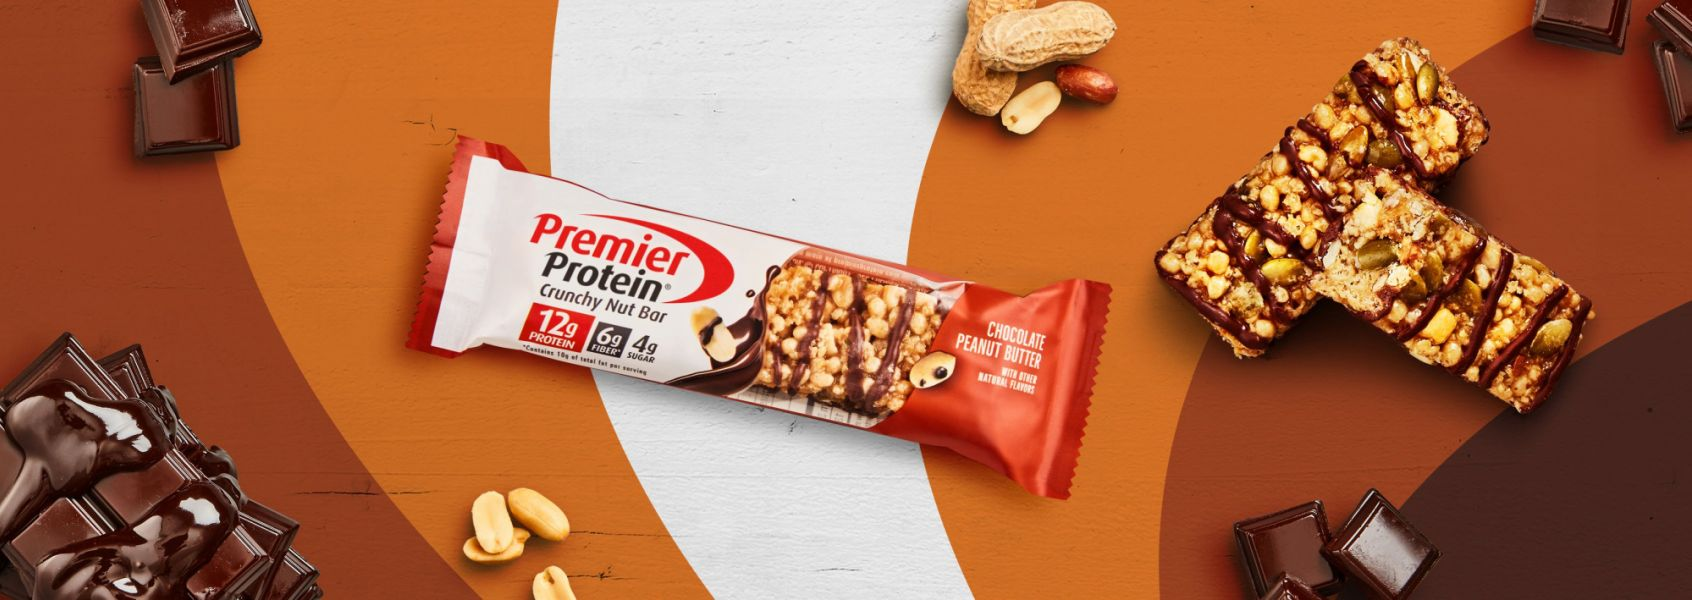 A photo of Premier Protein 12g Chocolate Peanut Butter Protein Bar